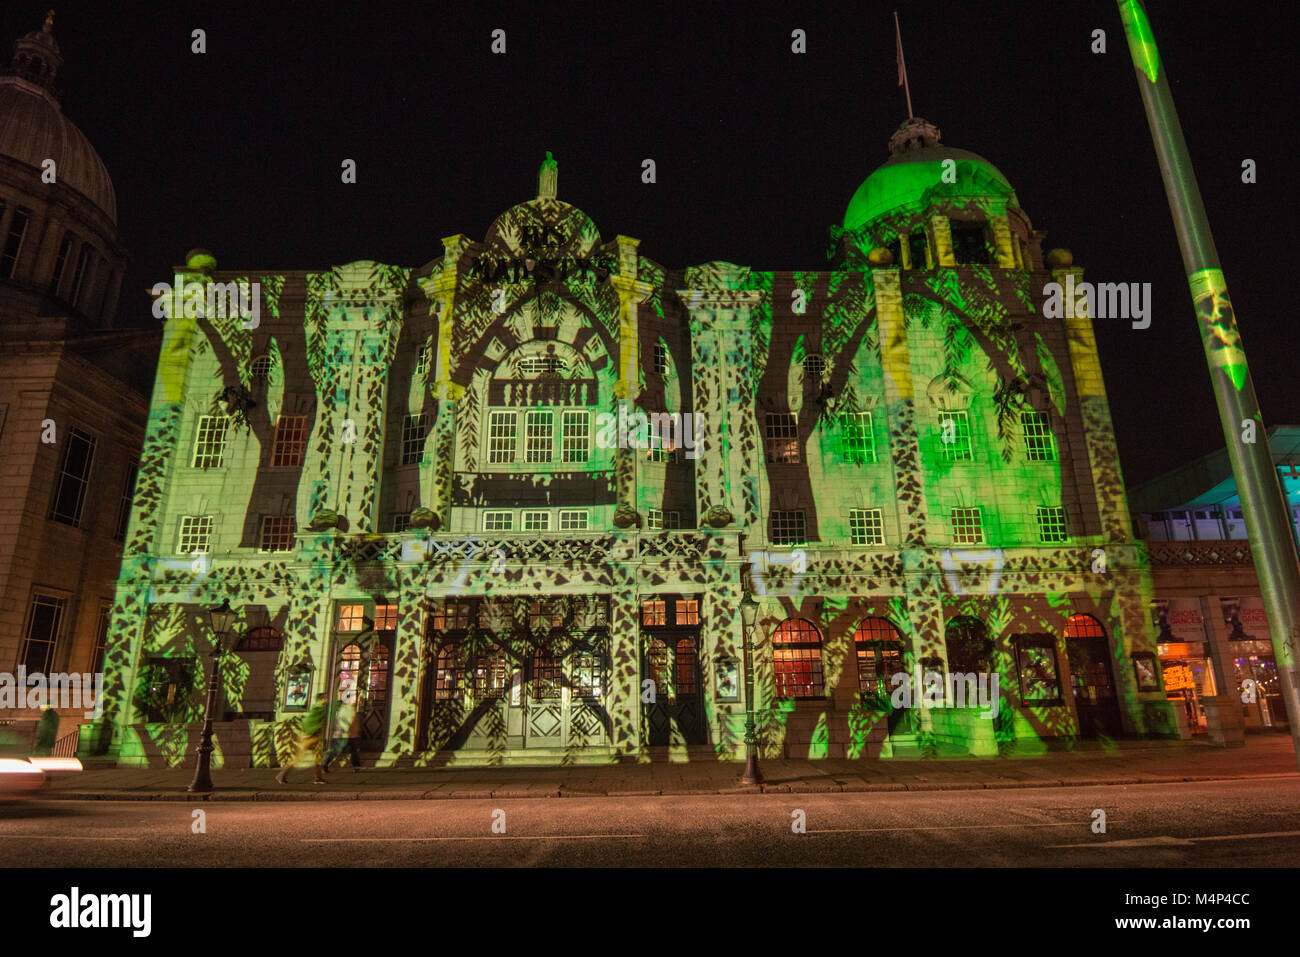 Spectra Light Festival 2018 projection on His Majesty's Theatre, Aberdeen, Scotland, UK - Stock Image